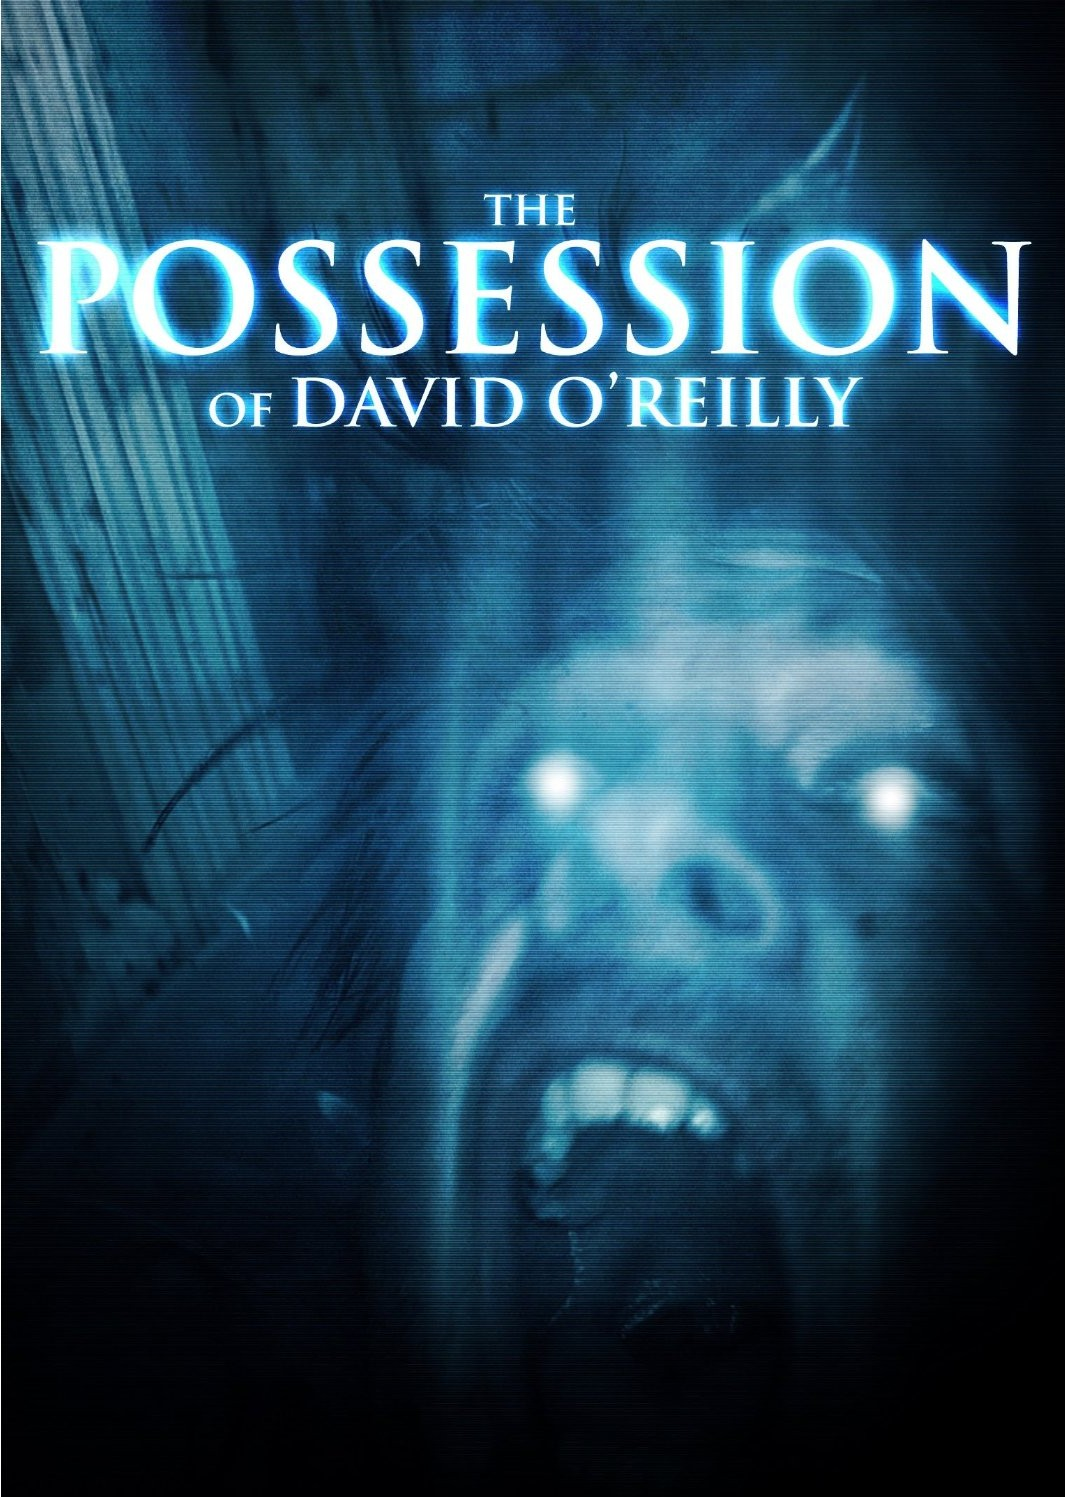 The Possesion